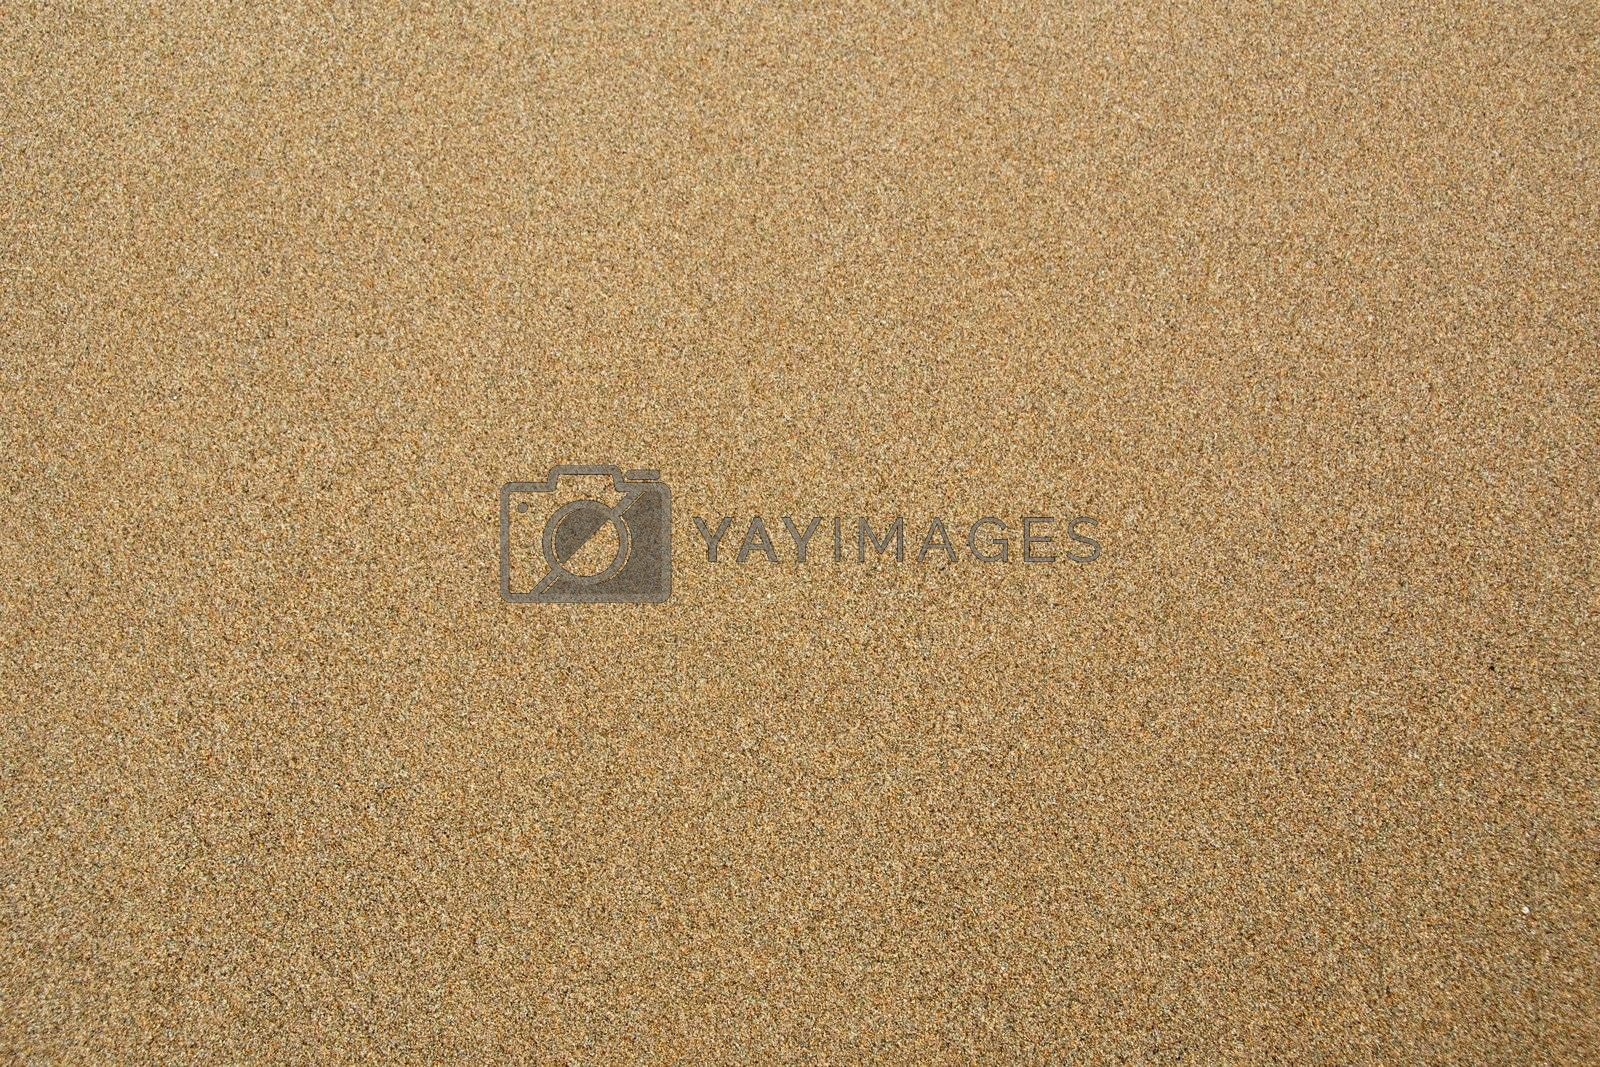 Sand texture or backround